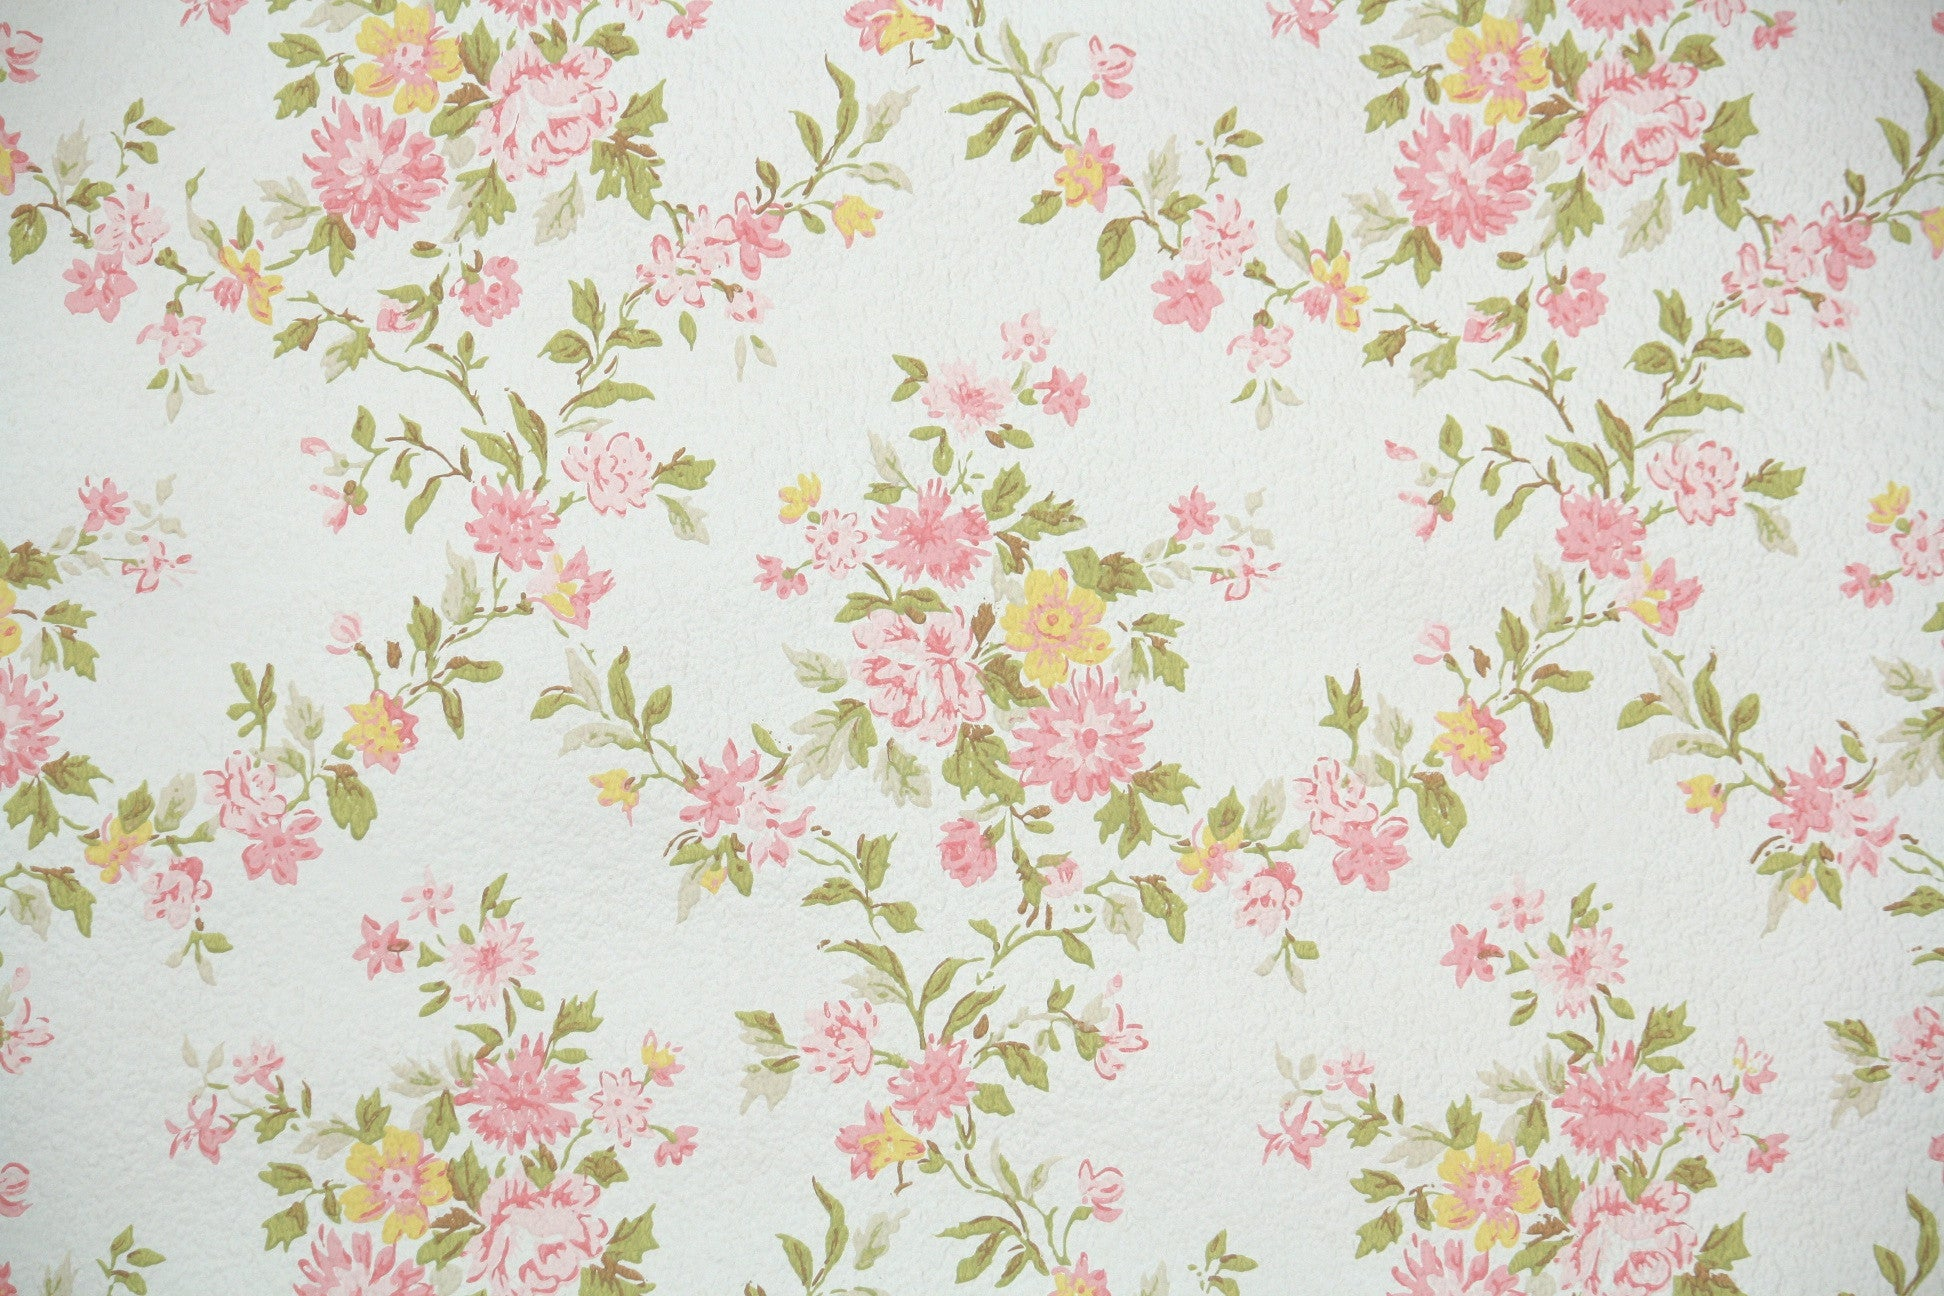 1960s Floral Vintage Wallpaper Hannahs Treasures Vintage Wallpaper